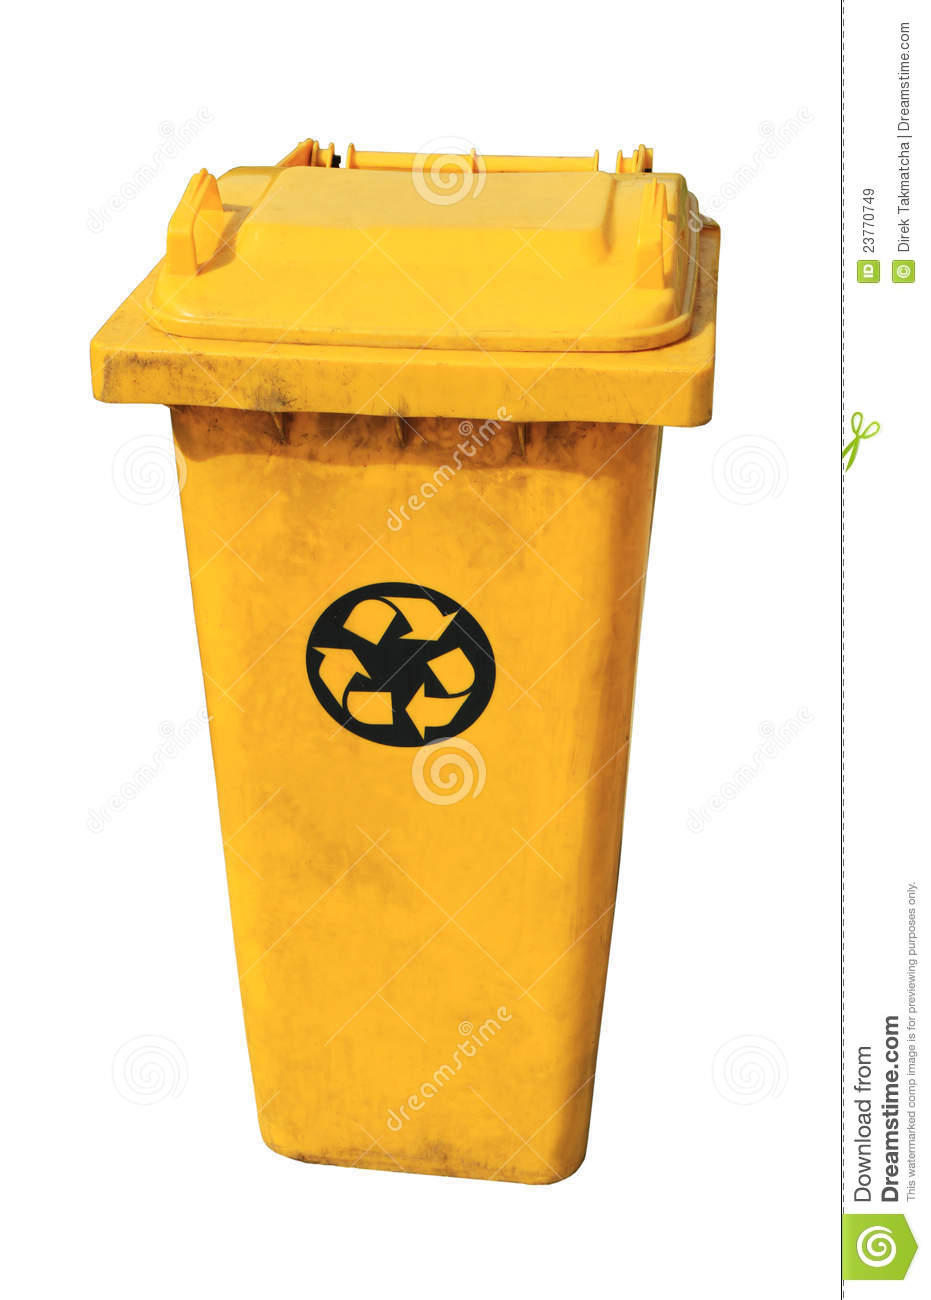 Yellow Recycle Bin Royalty Free Stock Images - Image: 23770749